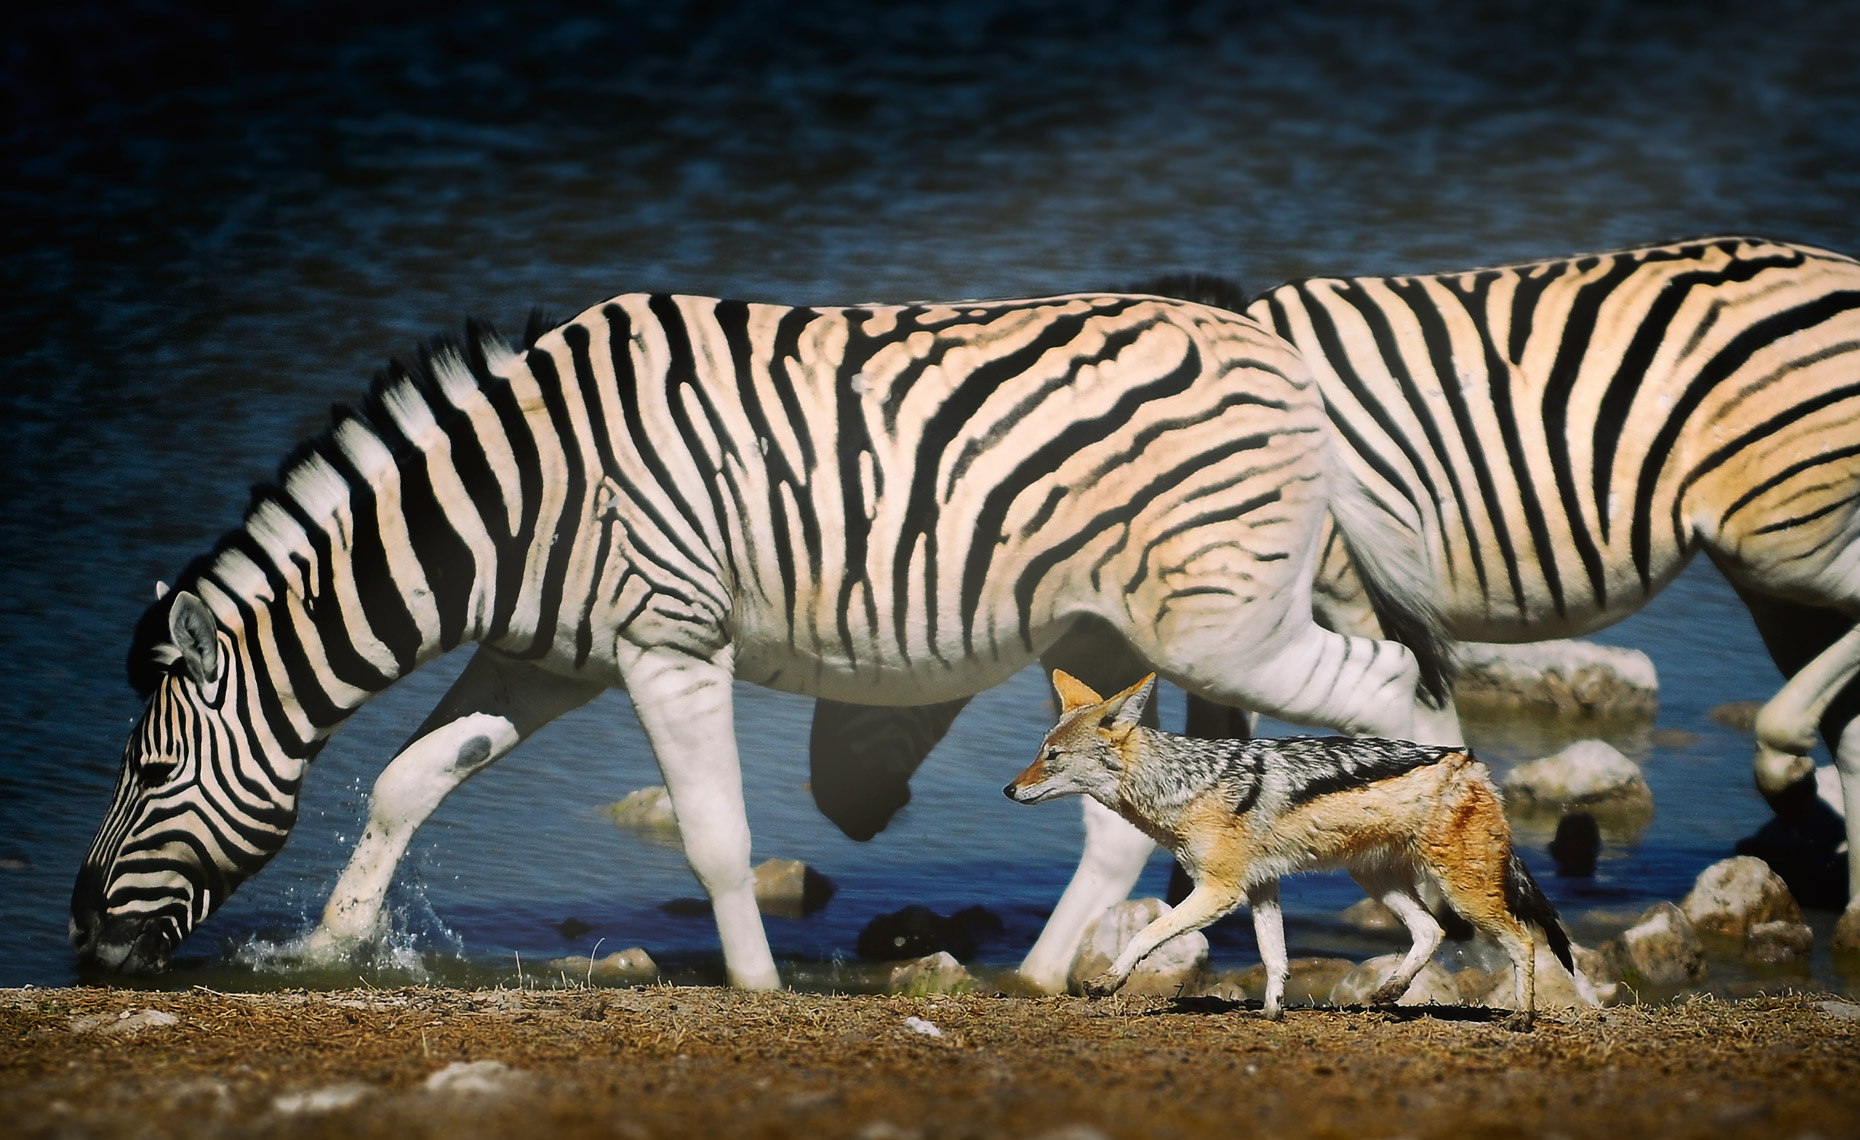 coyote-walking-with-zebras